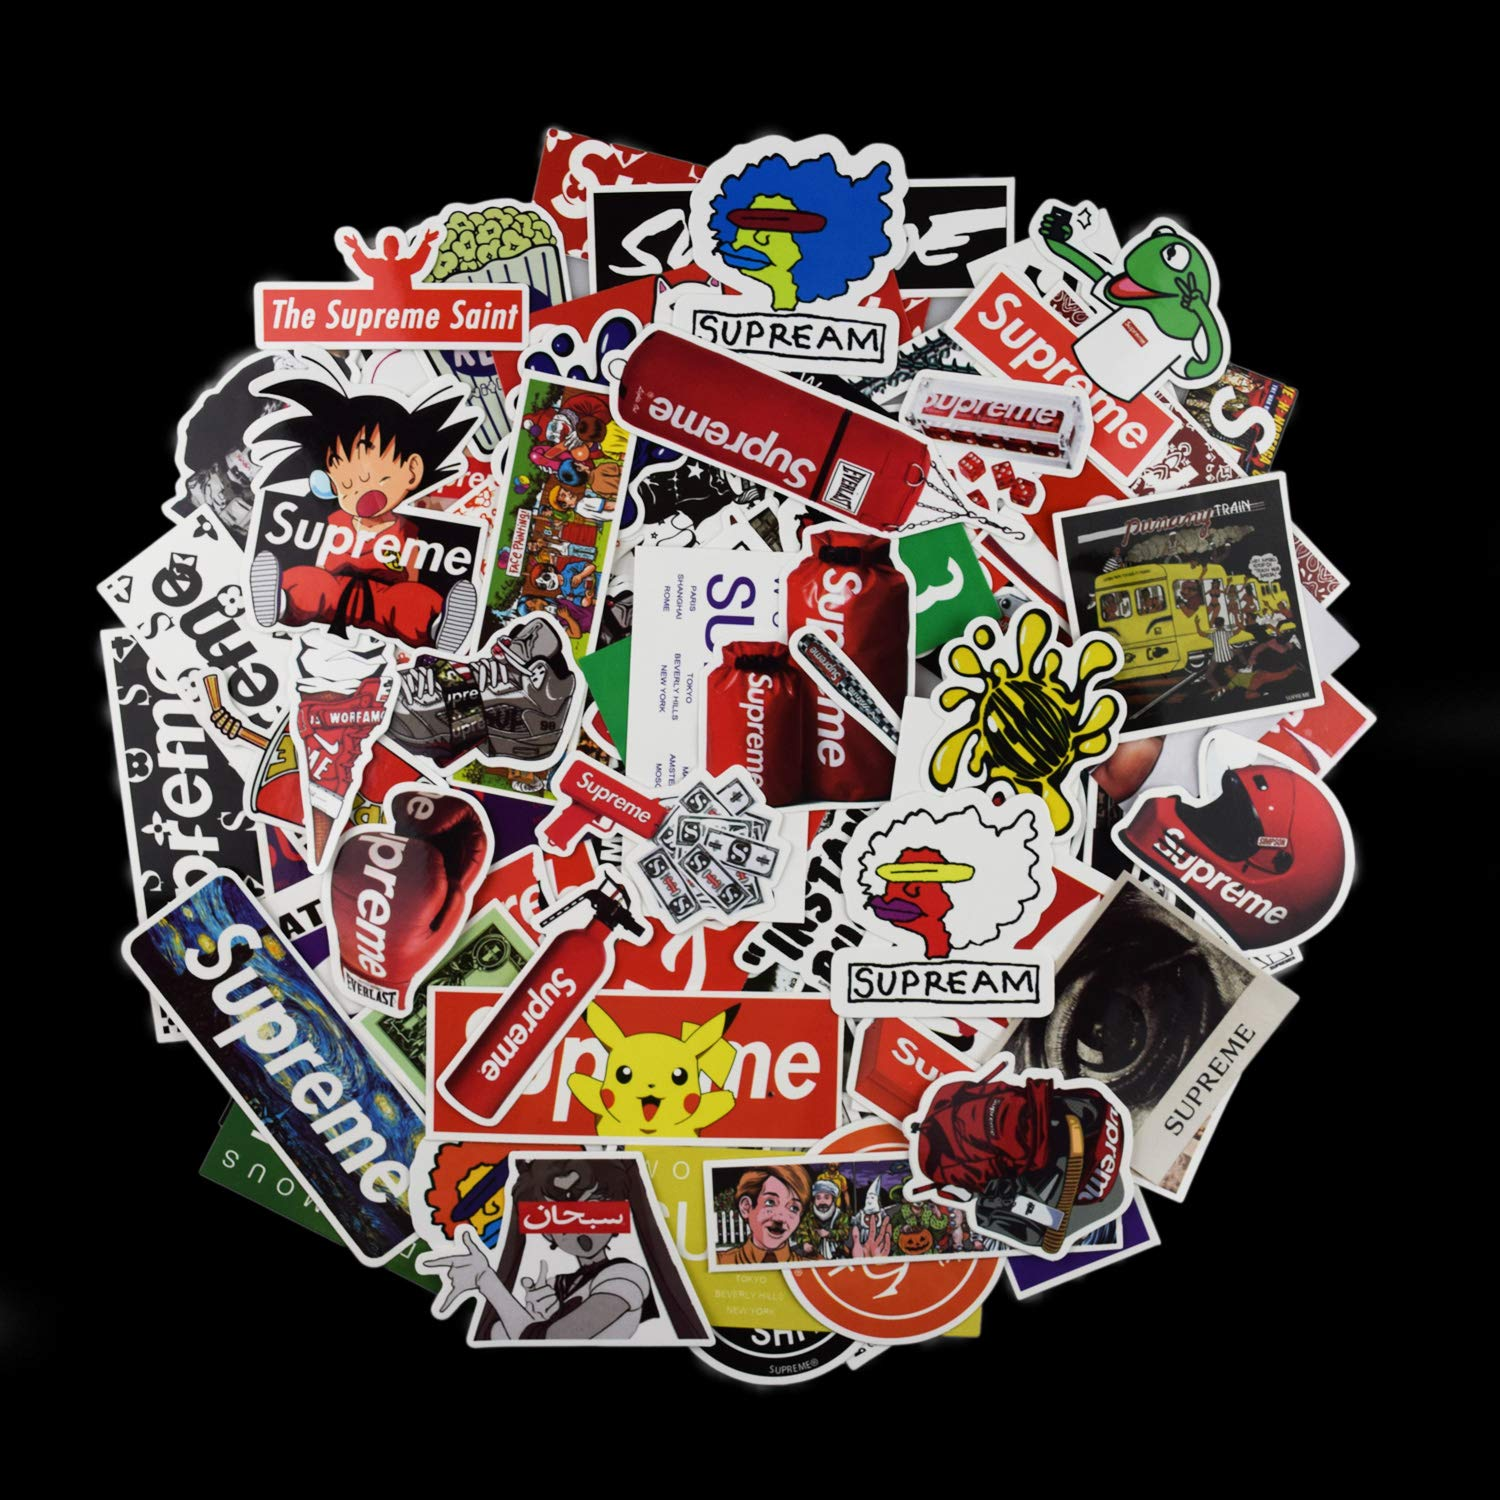 Supreme stickers pack konloy cool stickers 104 pcs fashion laptop car stickers for snowboard motorcycle bicycle phone computer diy keyboard car window